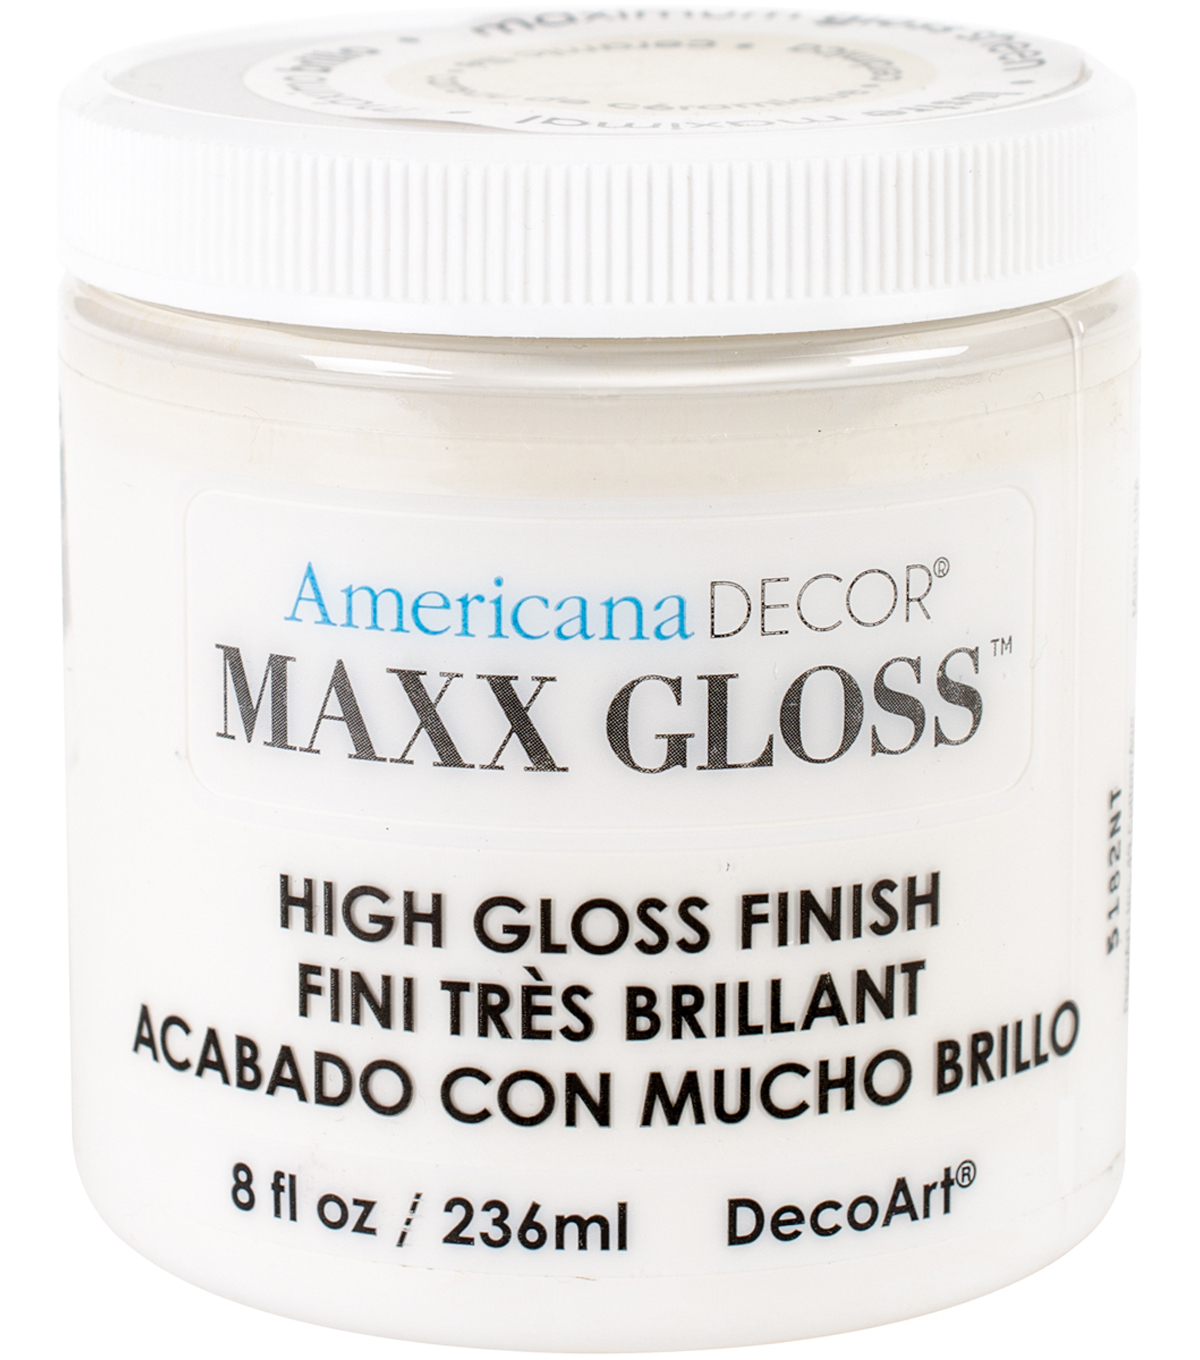 DecoArt Maxx Gloss Acrylic Paint 8oz